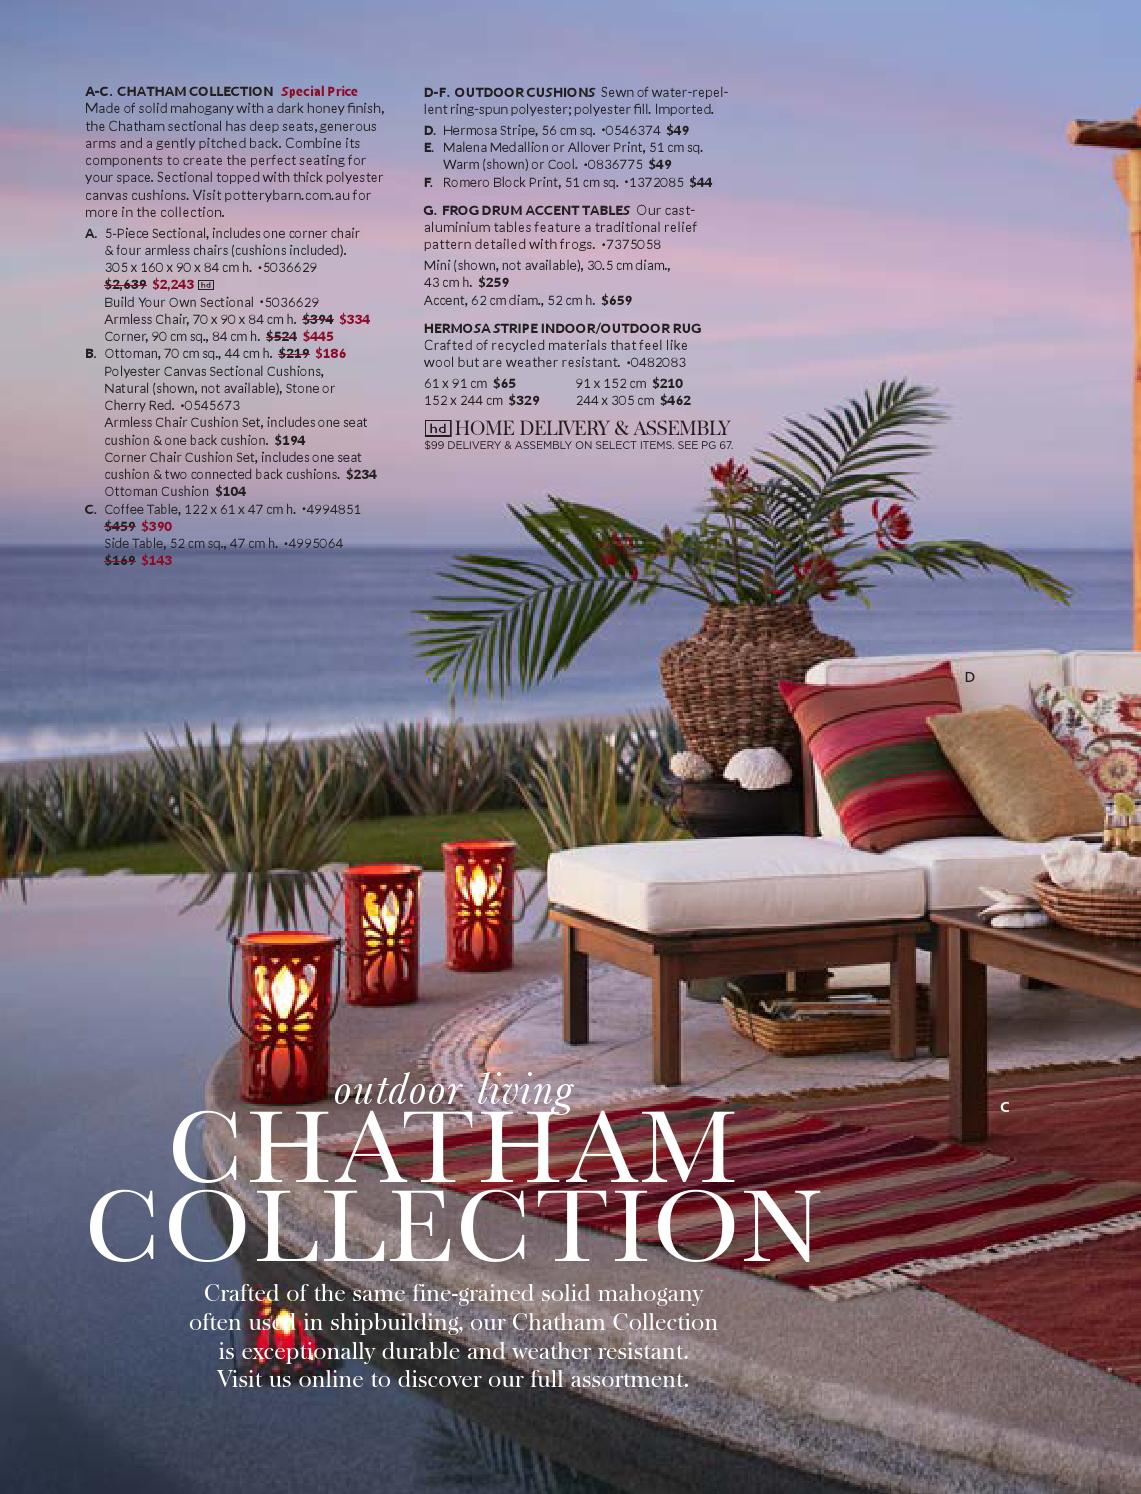 pottery barn summer catalogue williams page frog drum accent tables sonoma inc issuu white table solid wood sofa antique side water filter runner and placemats decorative wine